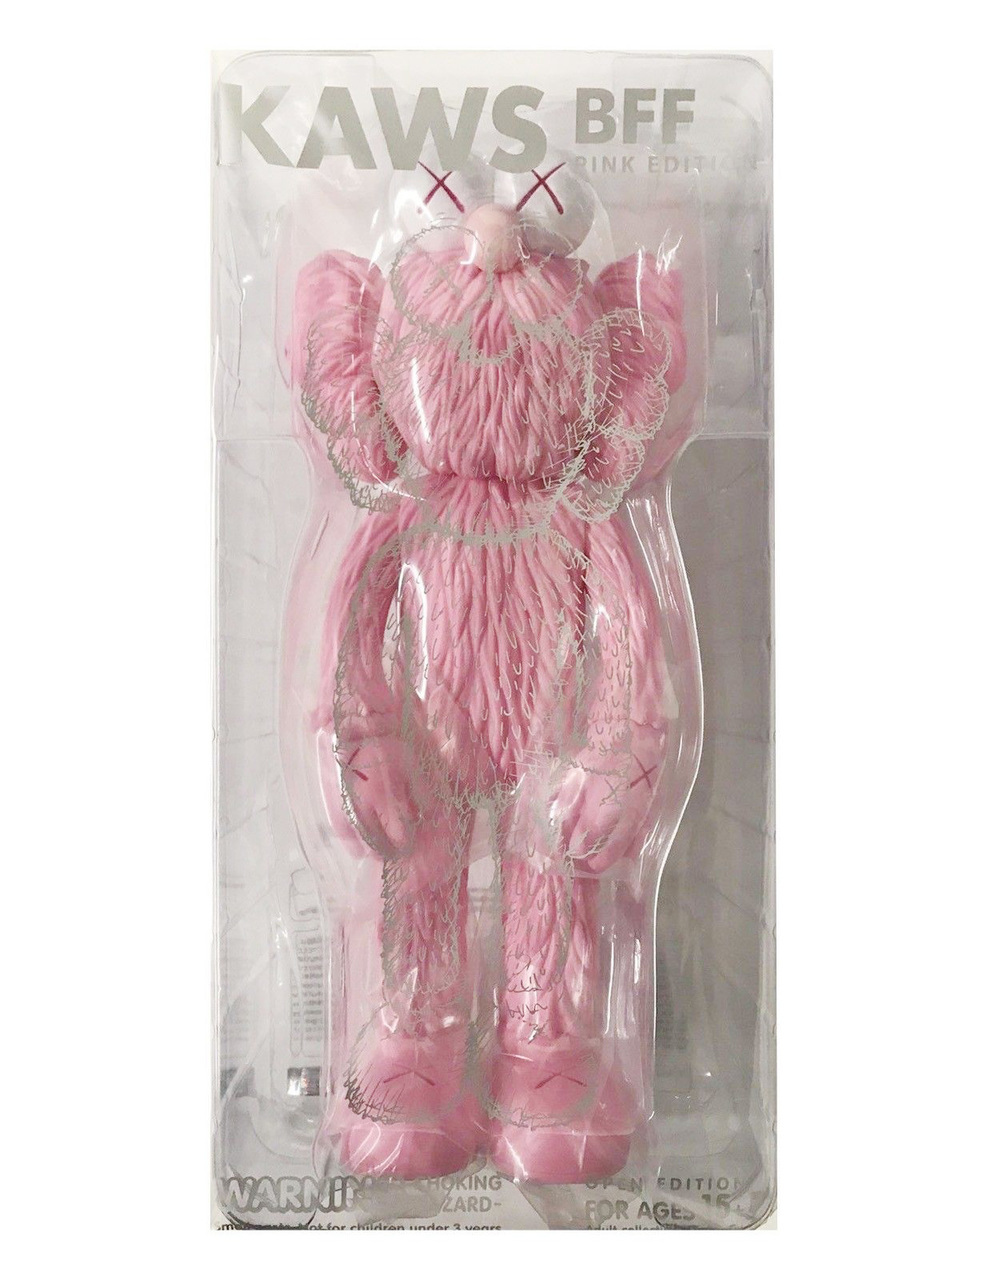 Bff (pink) by KAWS